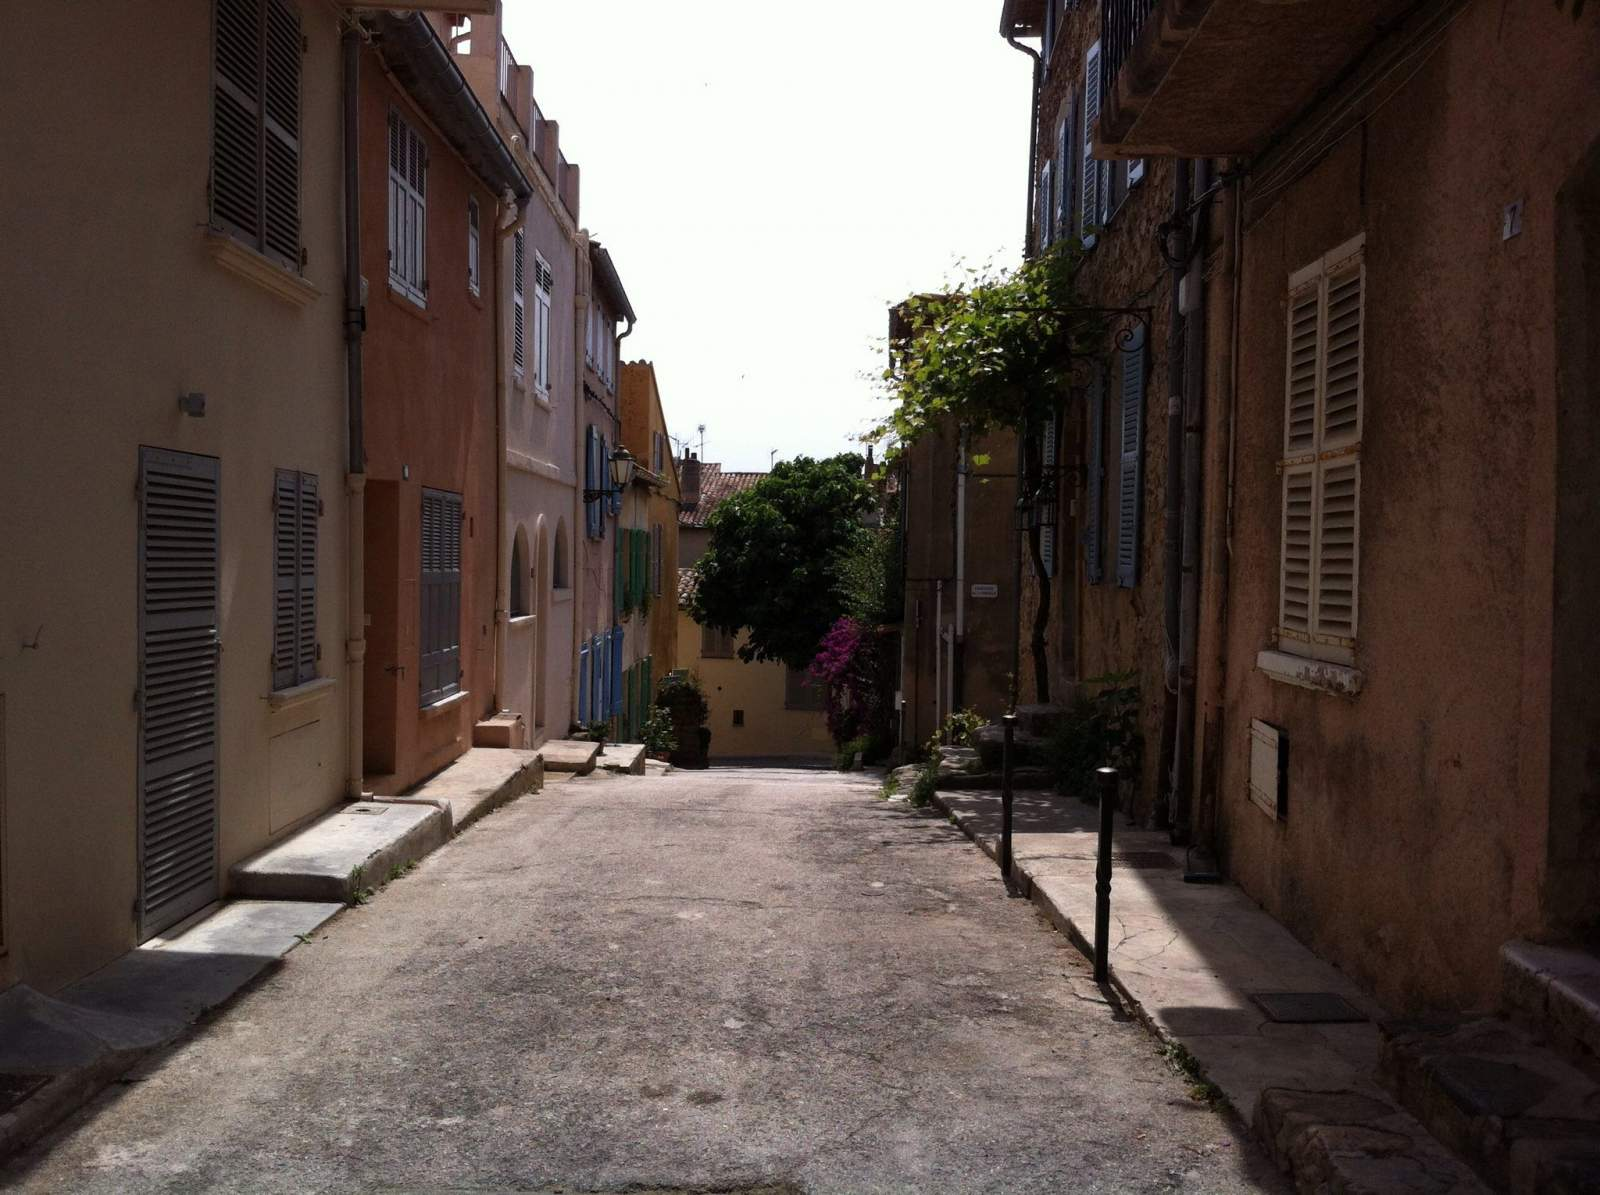 saint tropez town street with colourful houses both sides of road